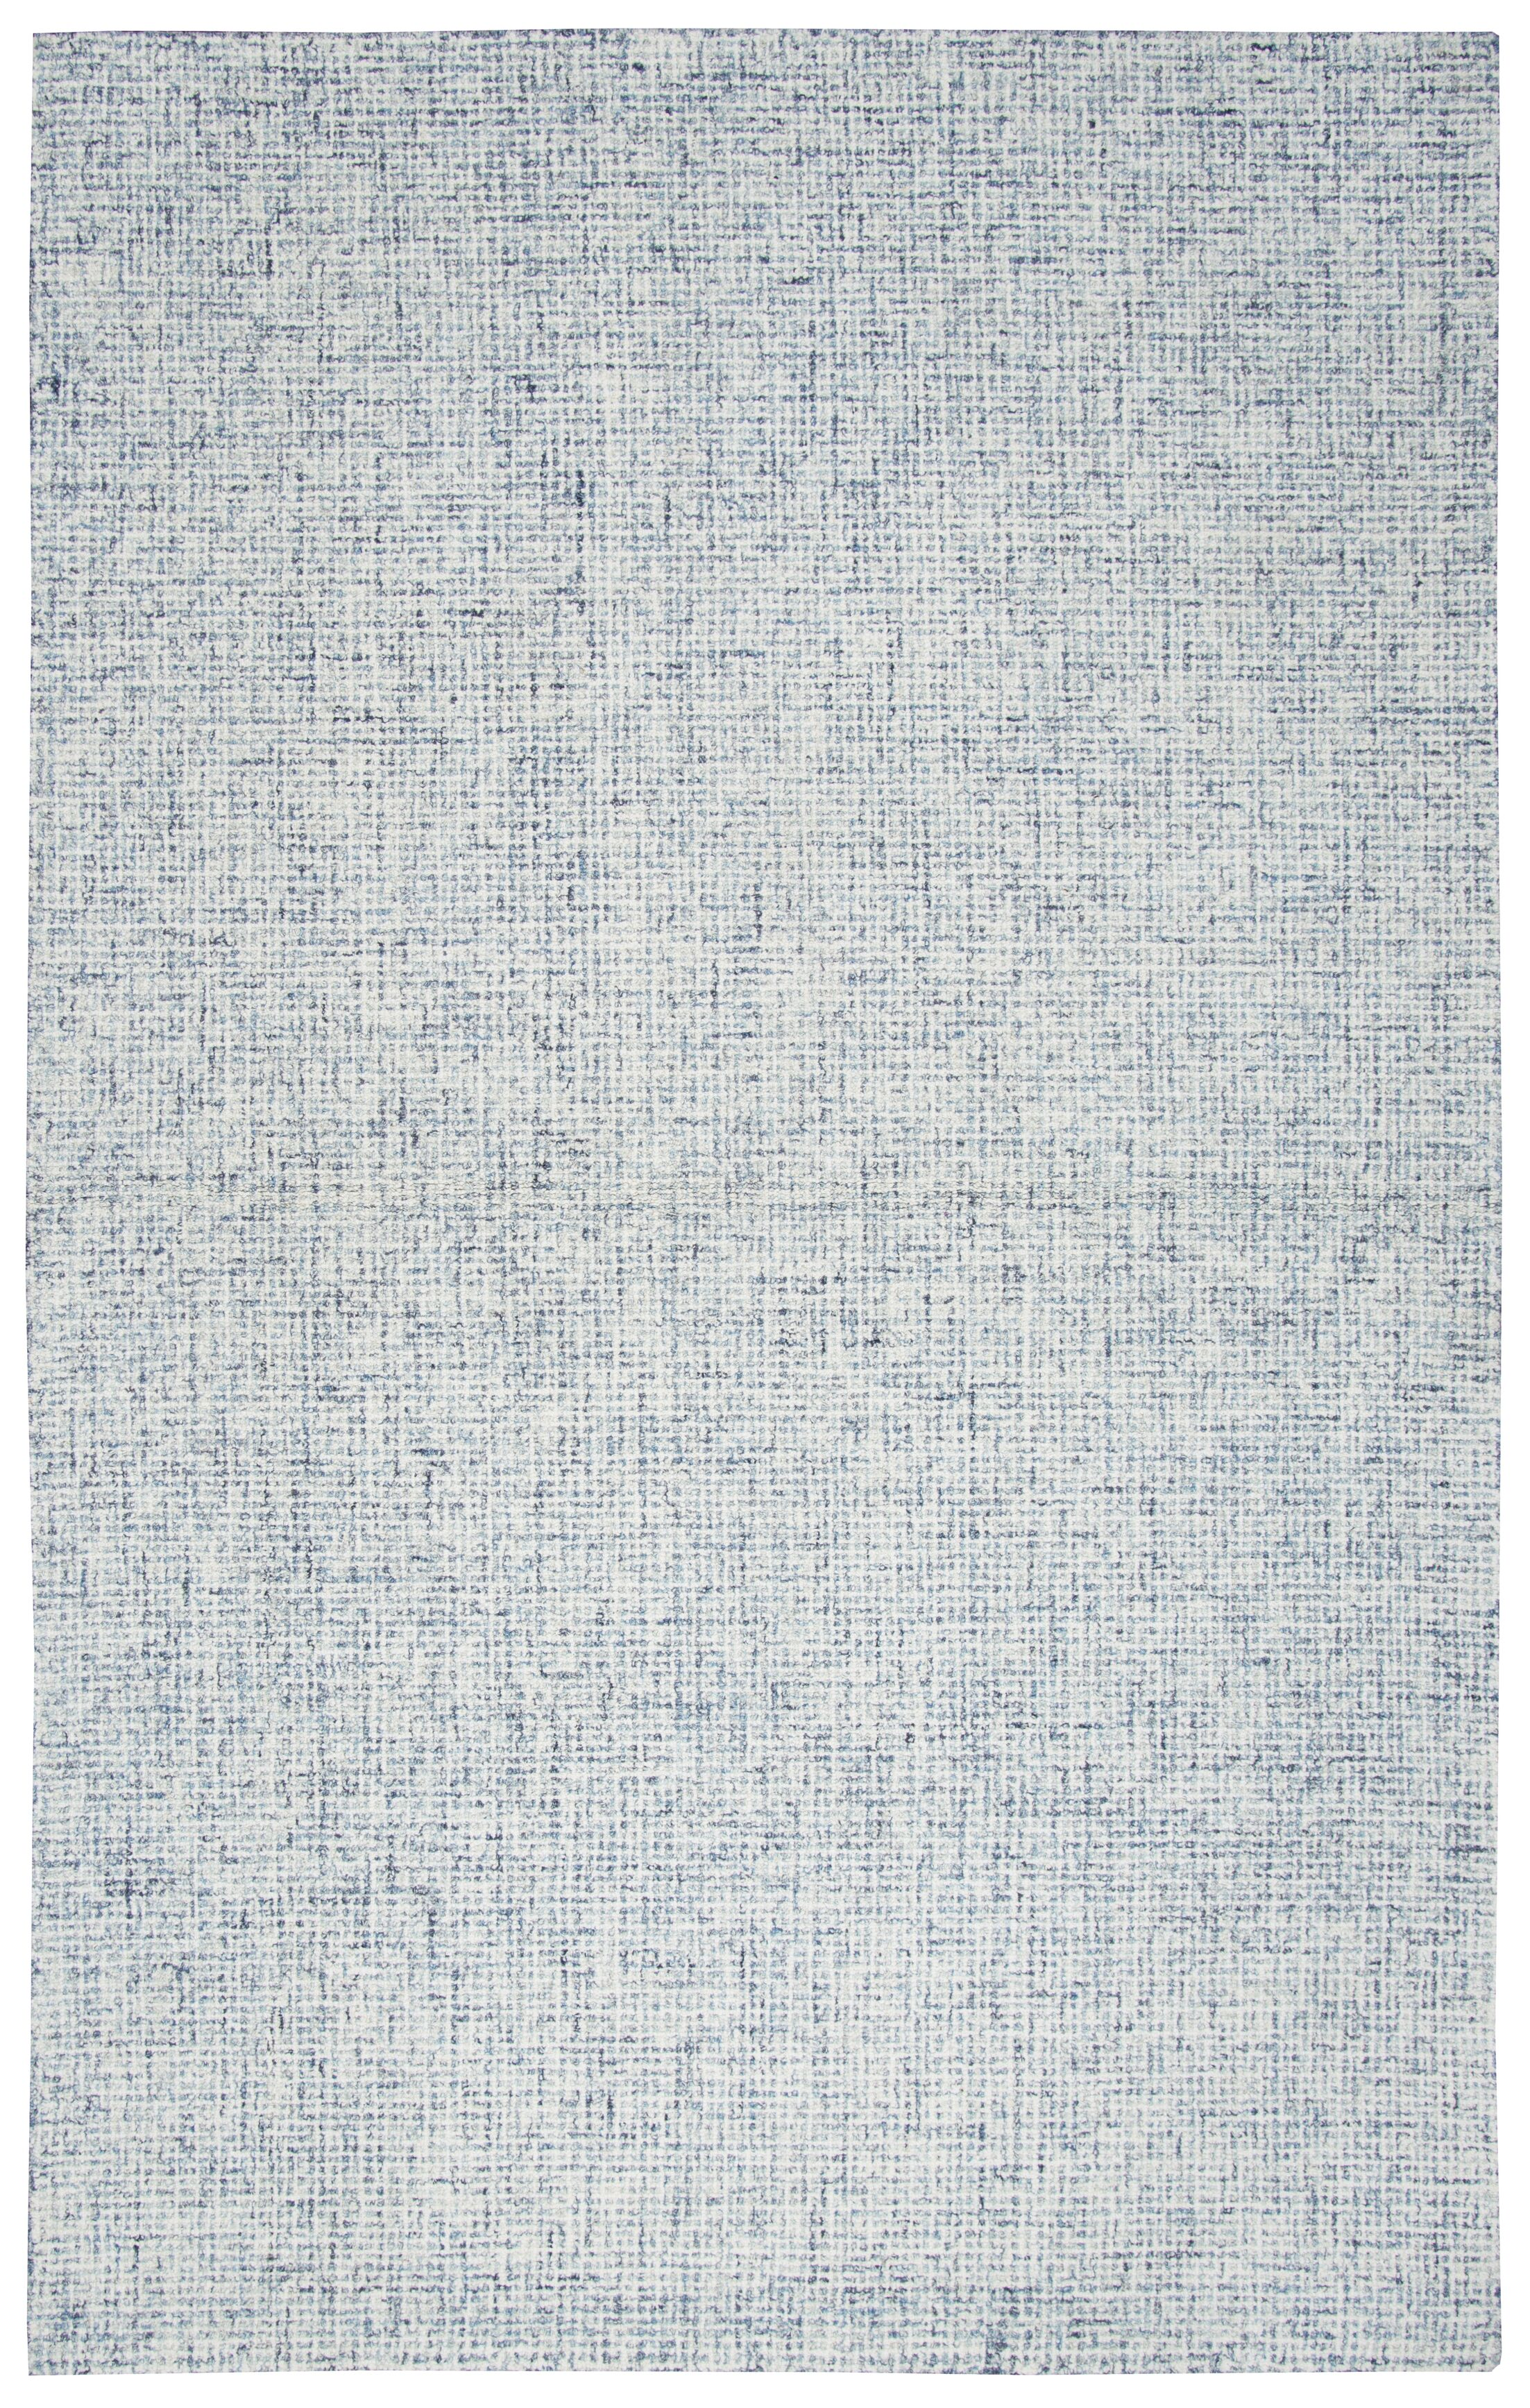 Marsh Hand-Tufted Wool Blue Area Rug Rug Size: Rectangle 8' x 10'